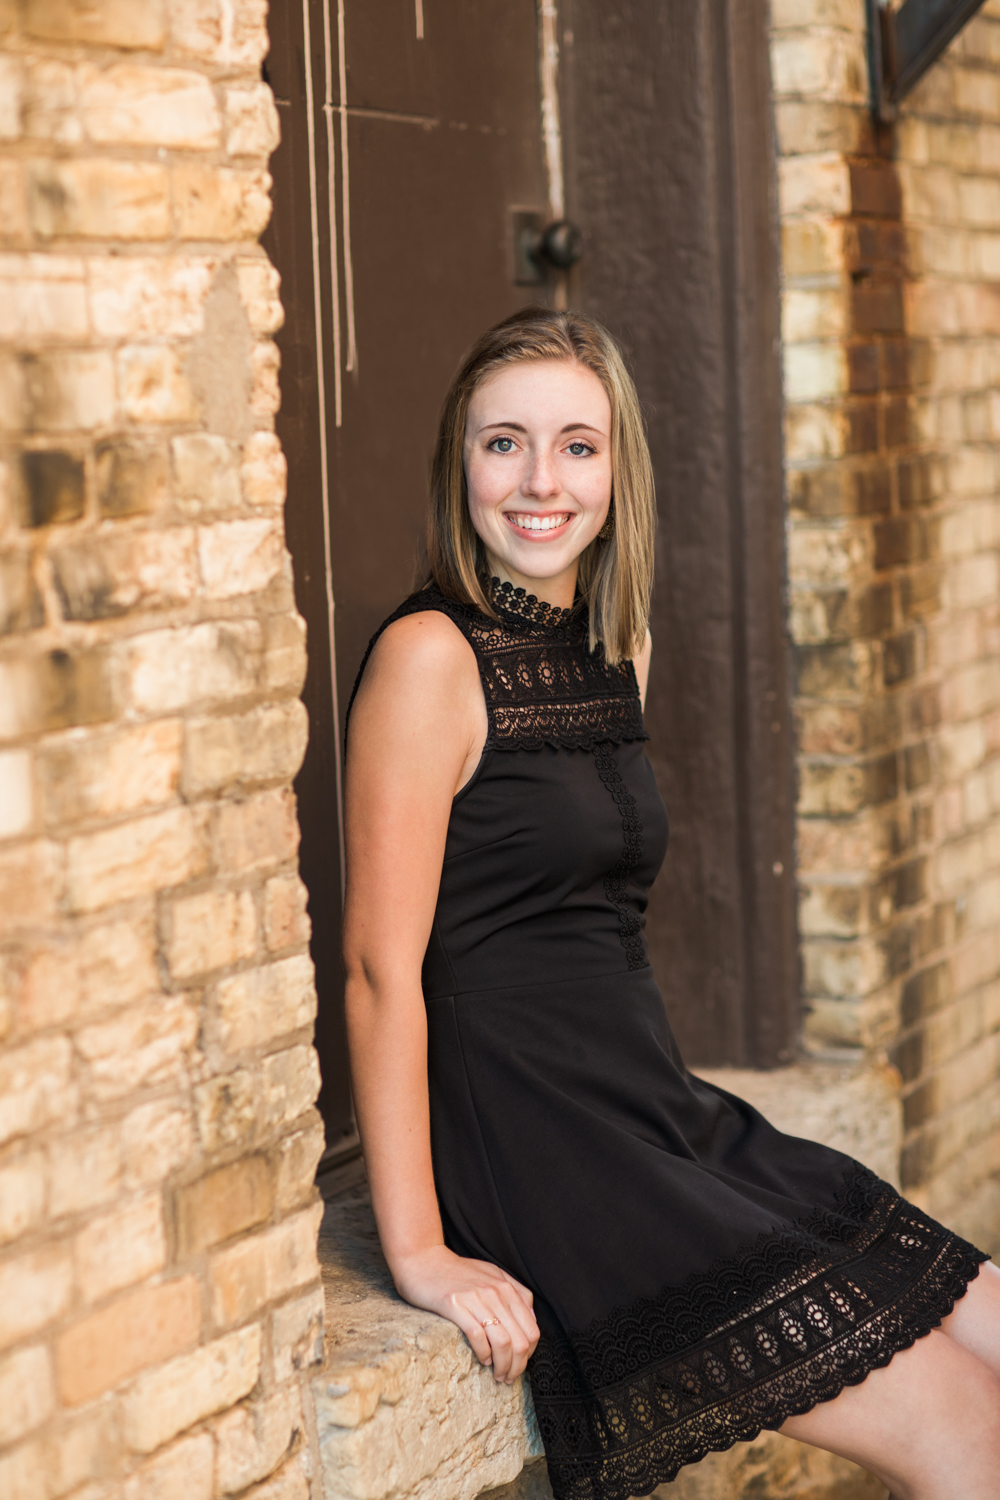 jill_hogan_Green Bay_senior_photography (8 of 16).jpg